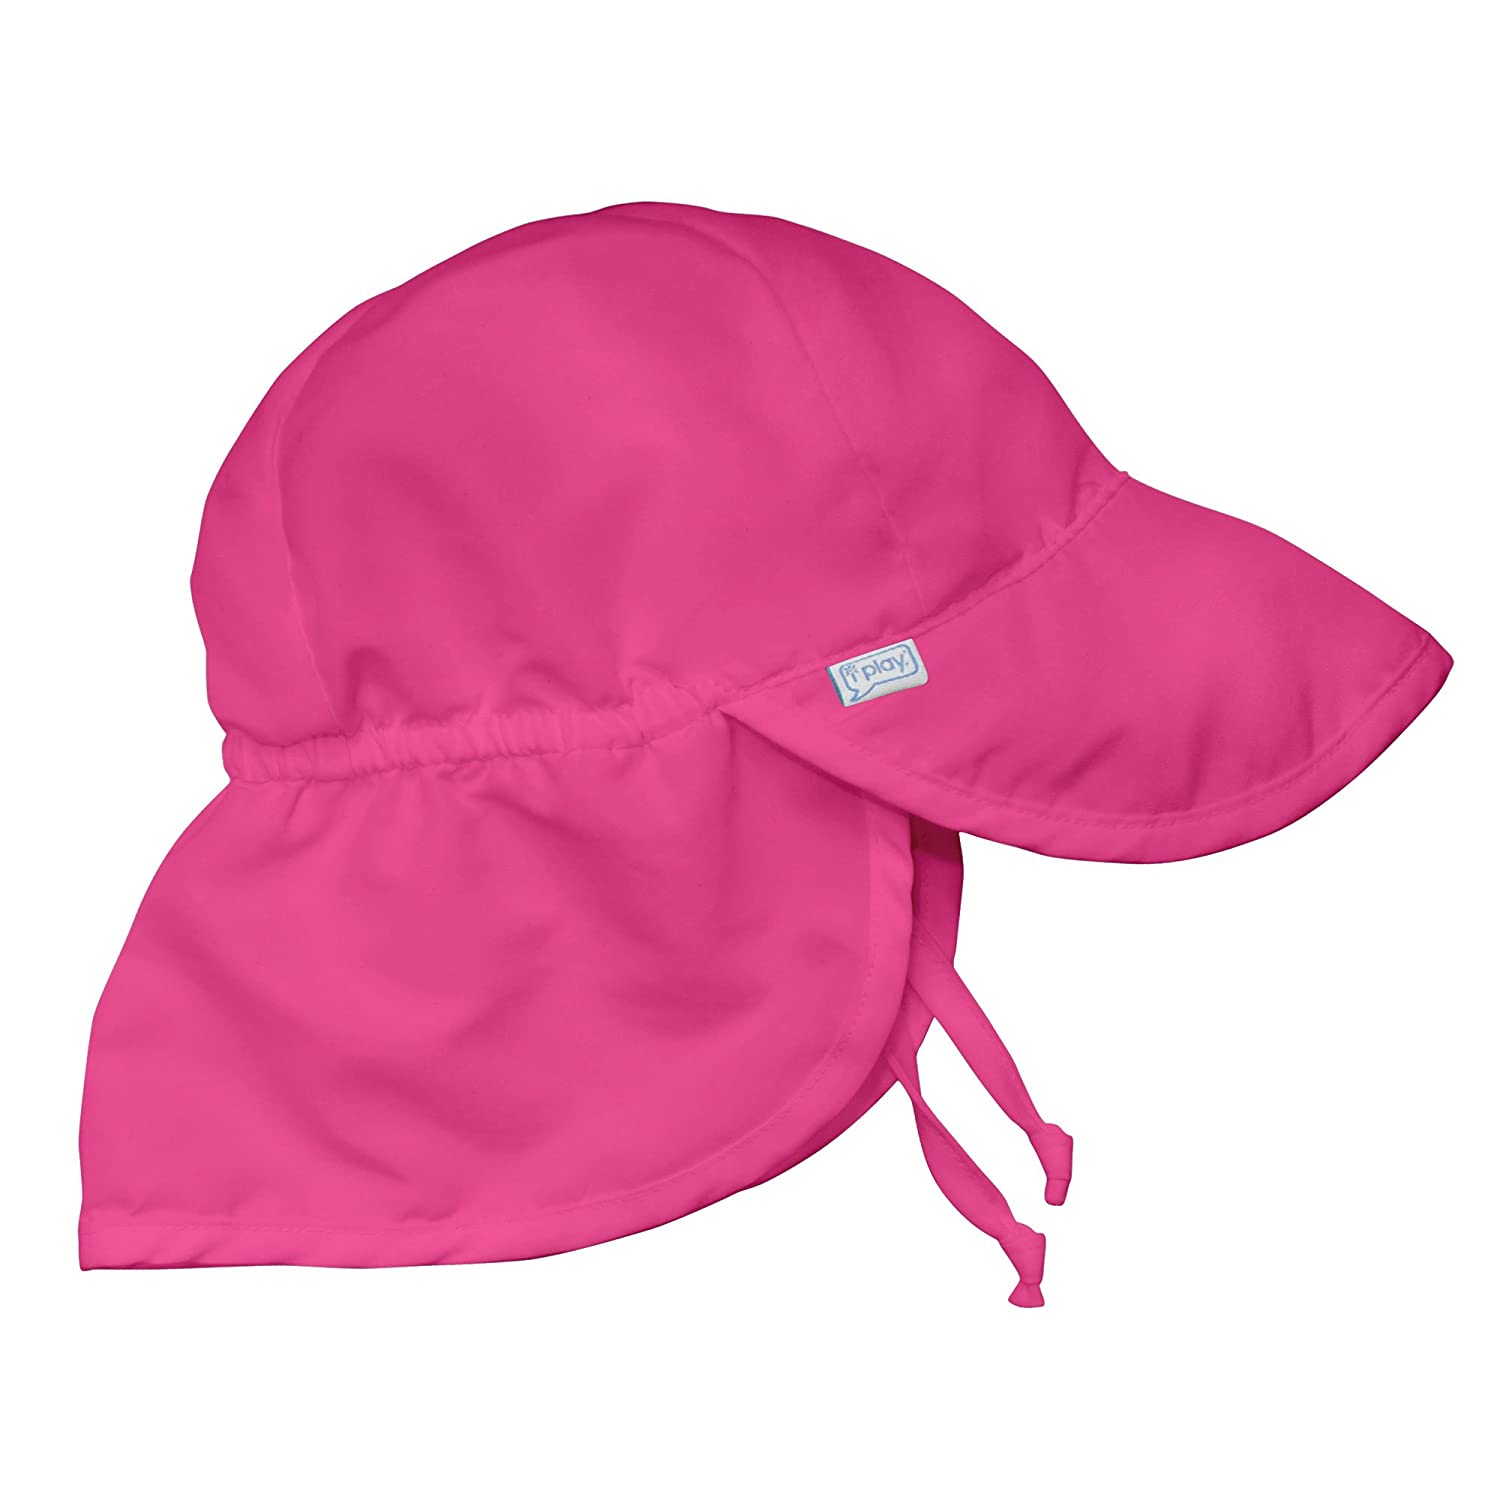 3210e2ef67a99 Iplay Baby Infant Toddler Unisex Solid Color Flap Sun Hat   Beach Hat by  Iplay